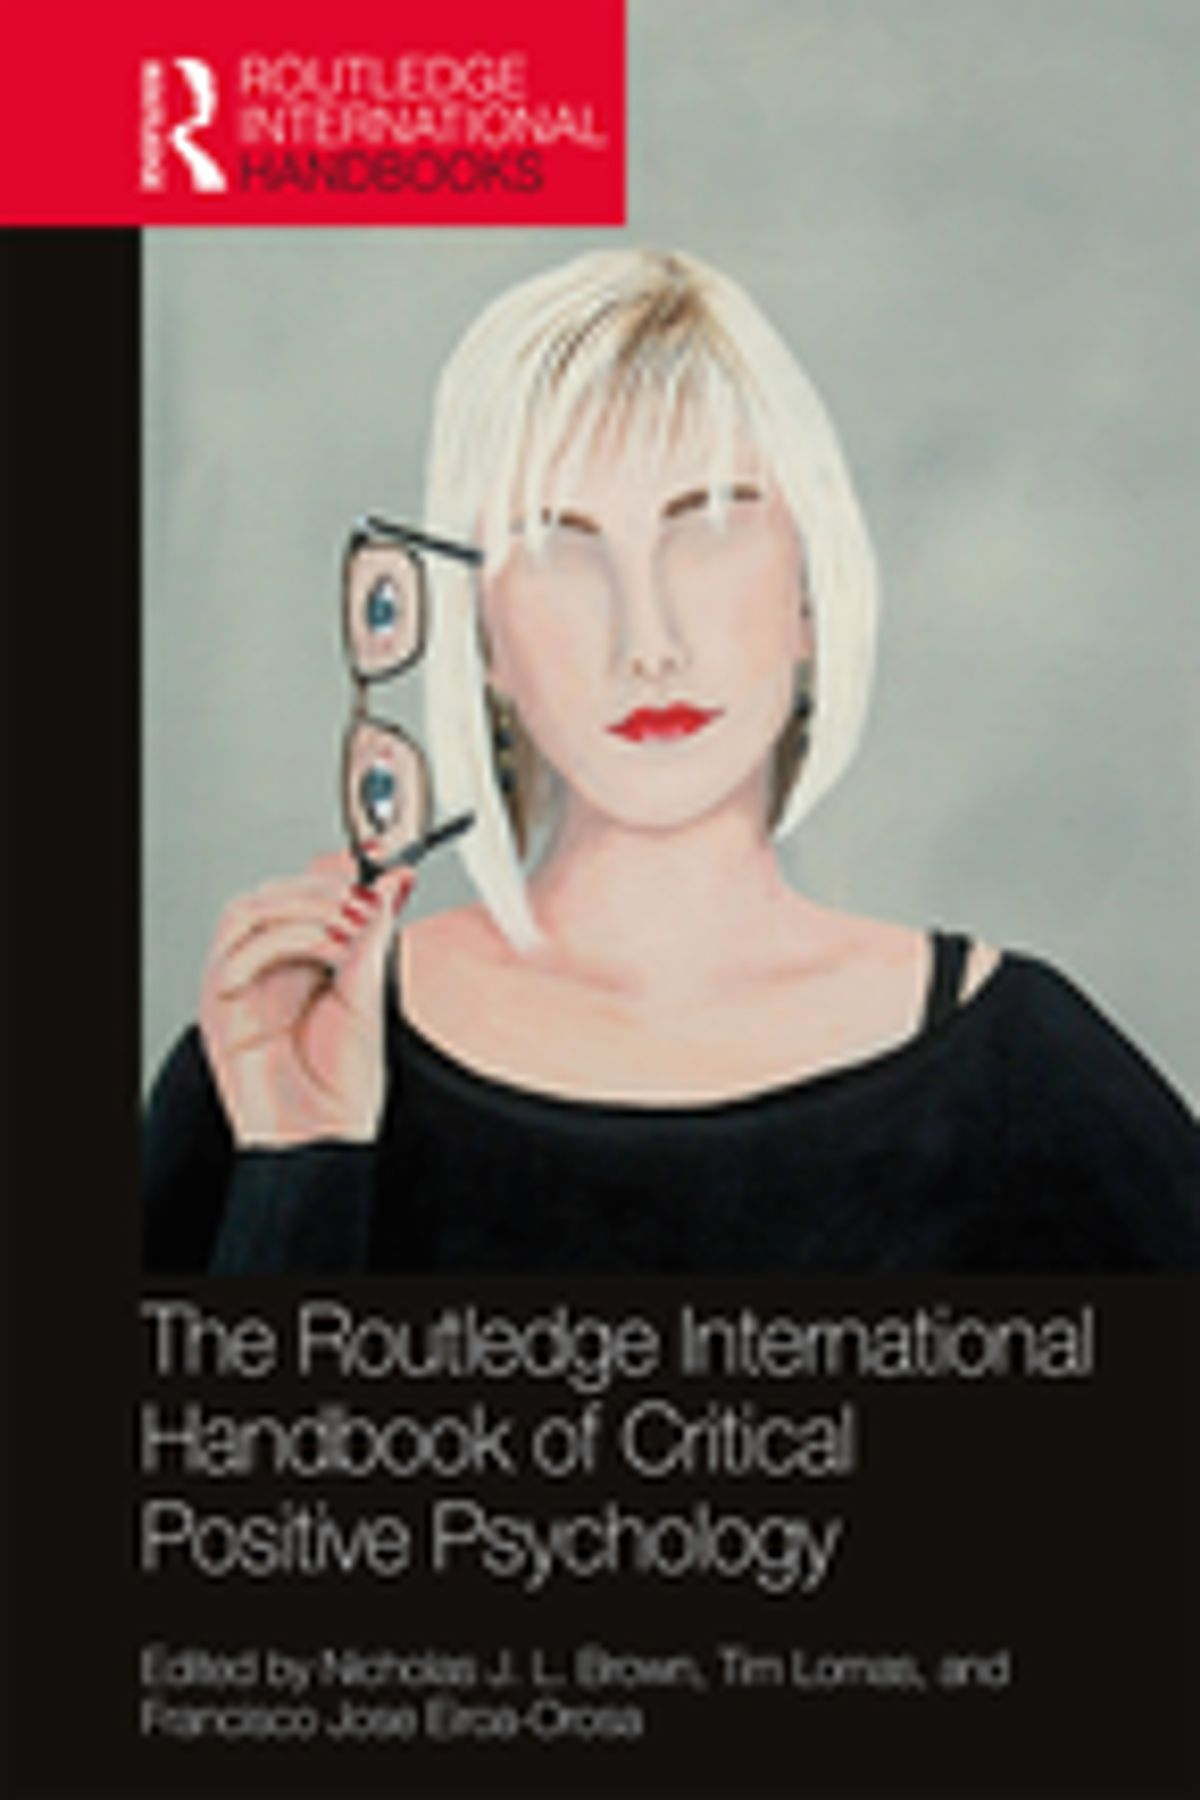 The Routledge International Handbook of Critical Positive Psychology